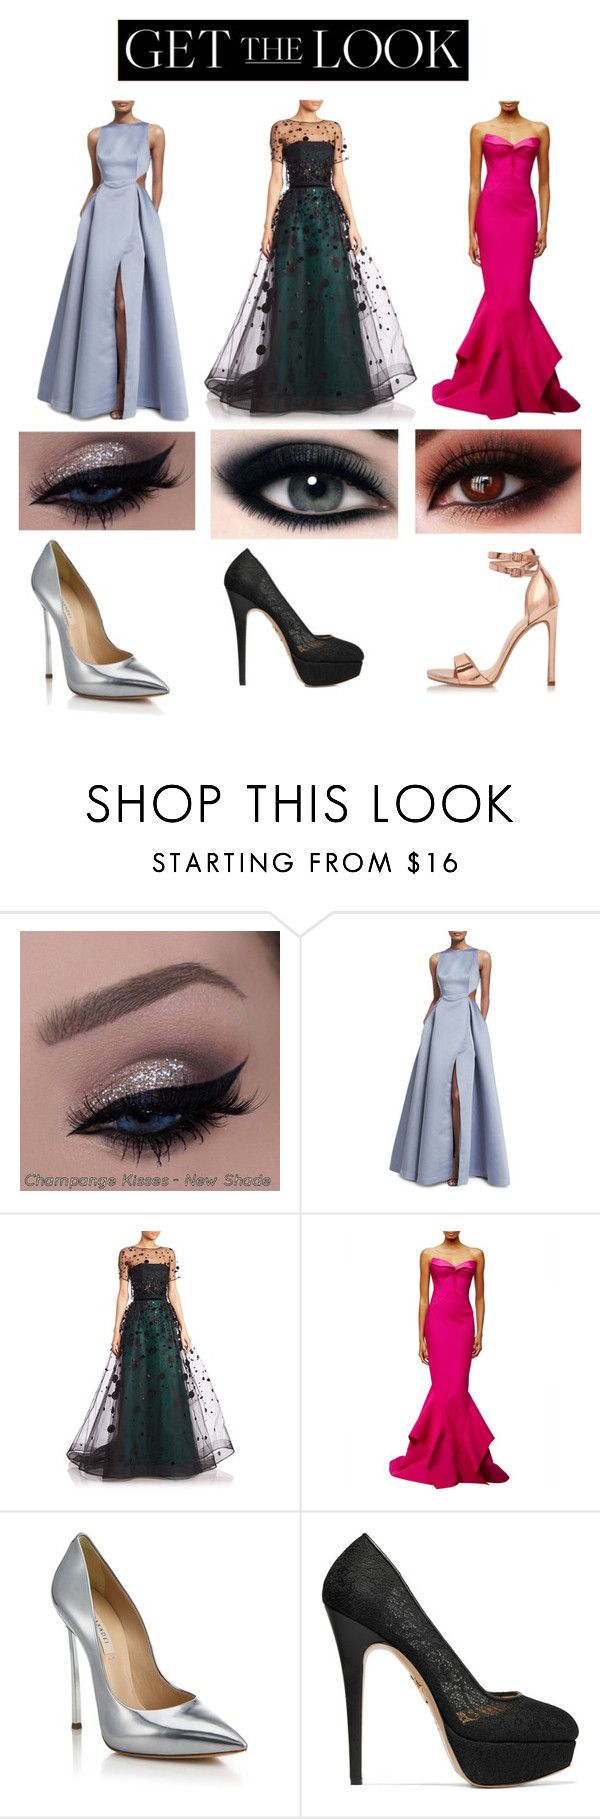 """Get the Look: Met Gala 2016"" by fashion-feed ❤ liked on Polyvore featuring Halston Heritage, Carolina Herrera, Zac Posen, Casadei, Charlotte Olympia, River Island, GetTheLook and MetGala"